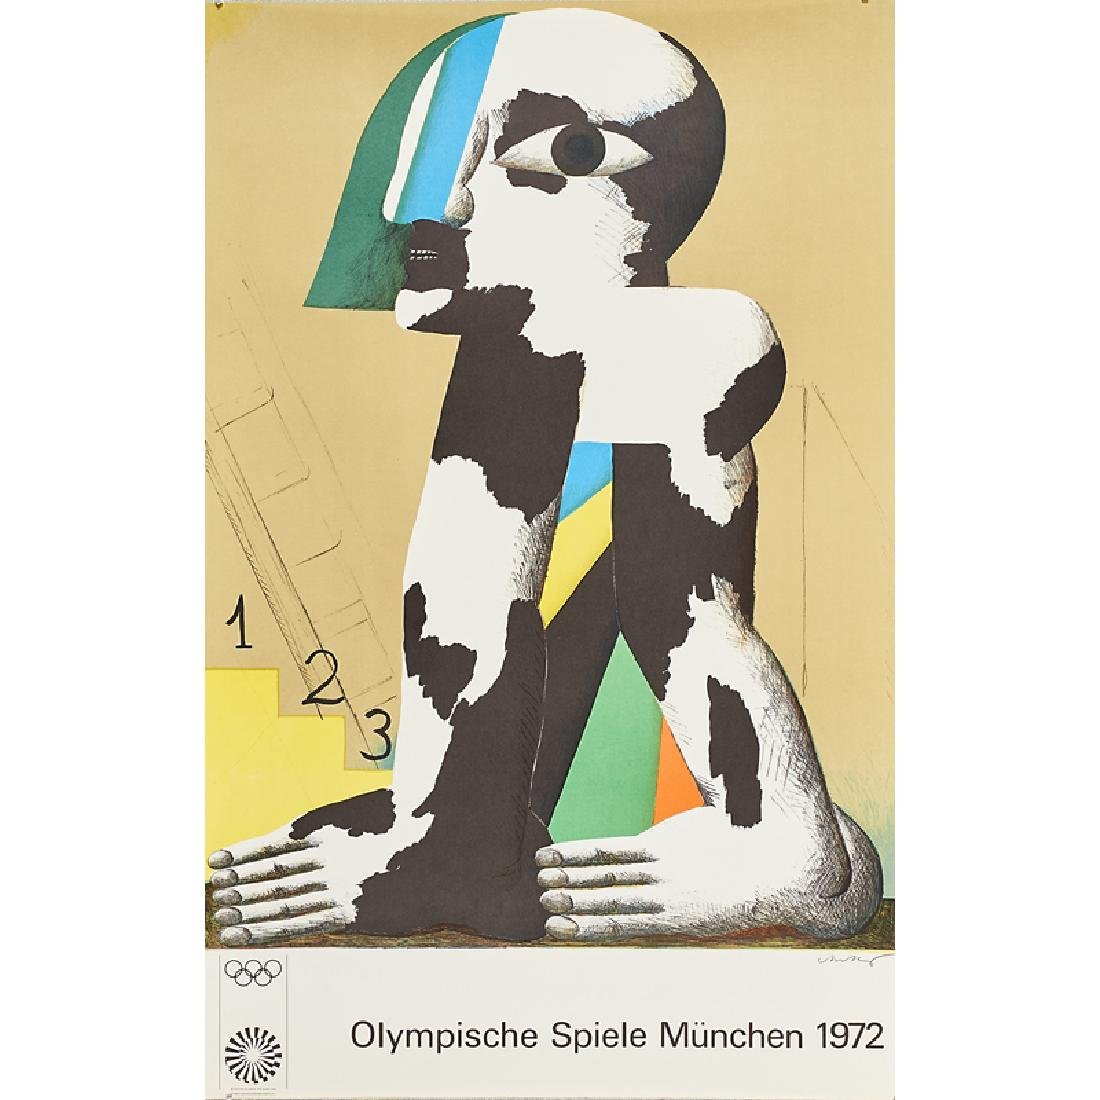 1972 MUNICH OLYMPIC POSTERS - 9